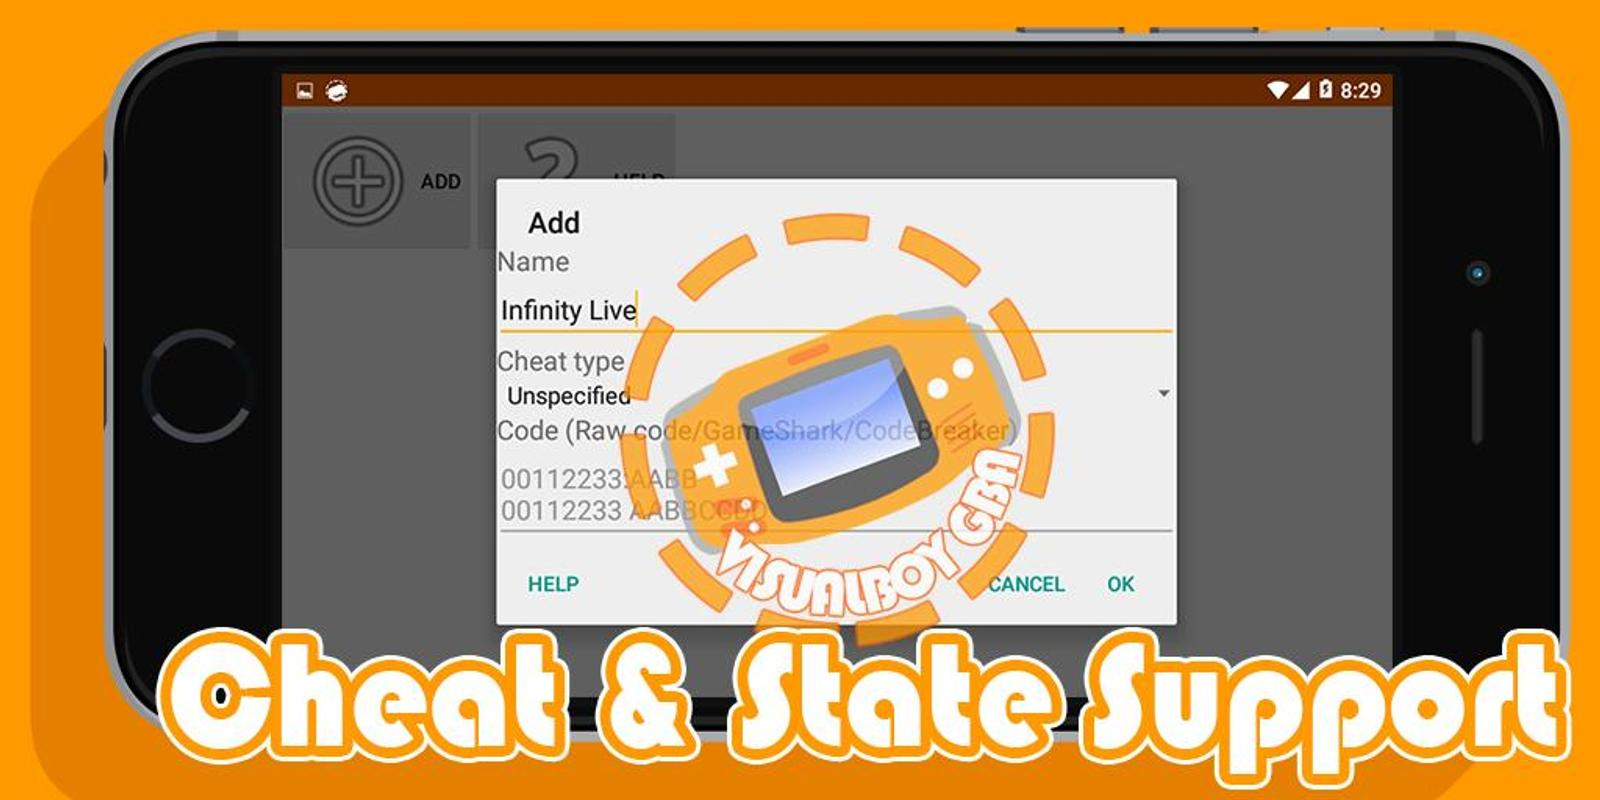 how to use cheat on gba emulator android